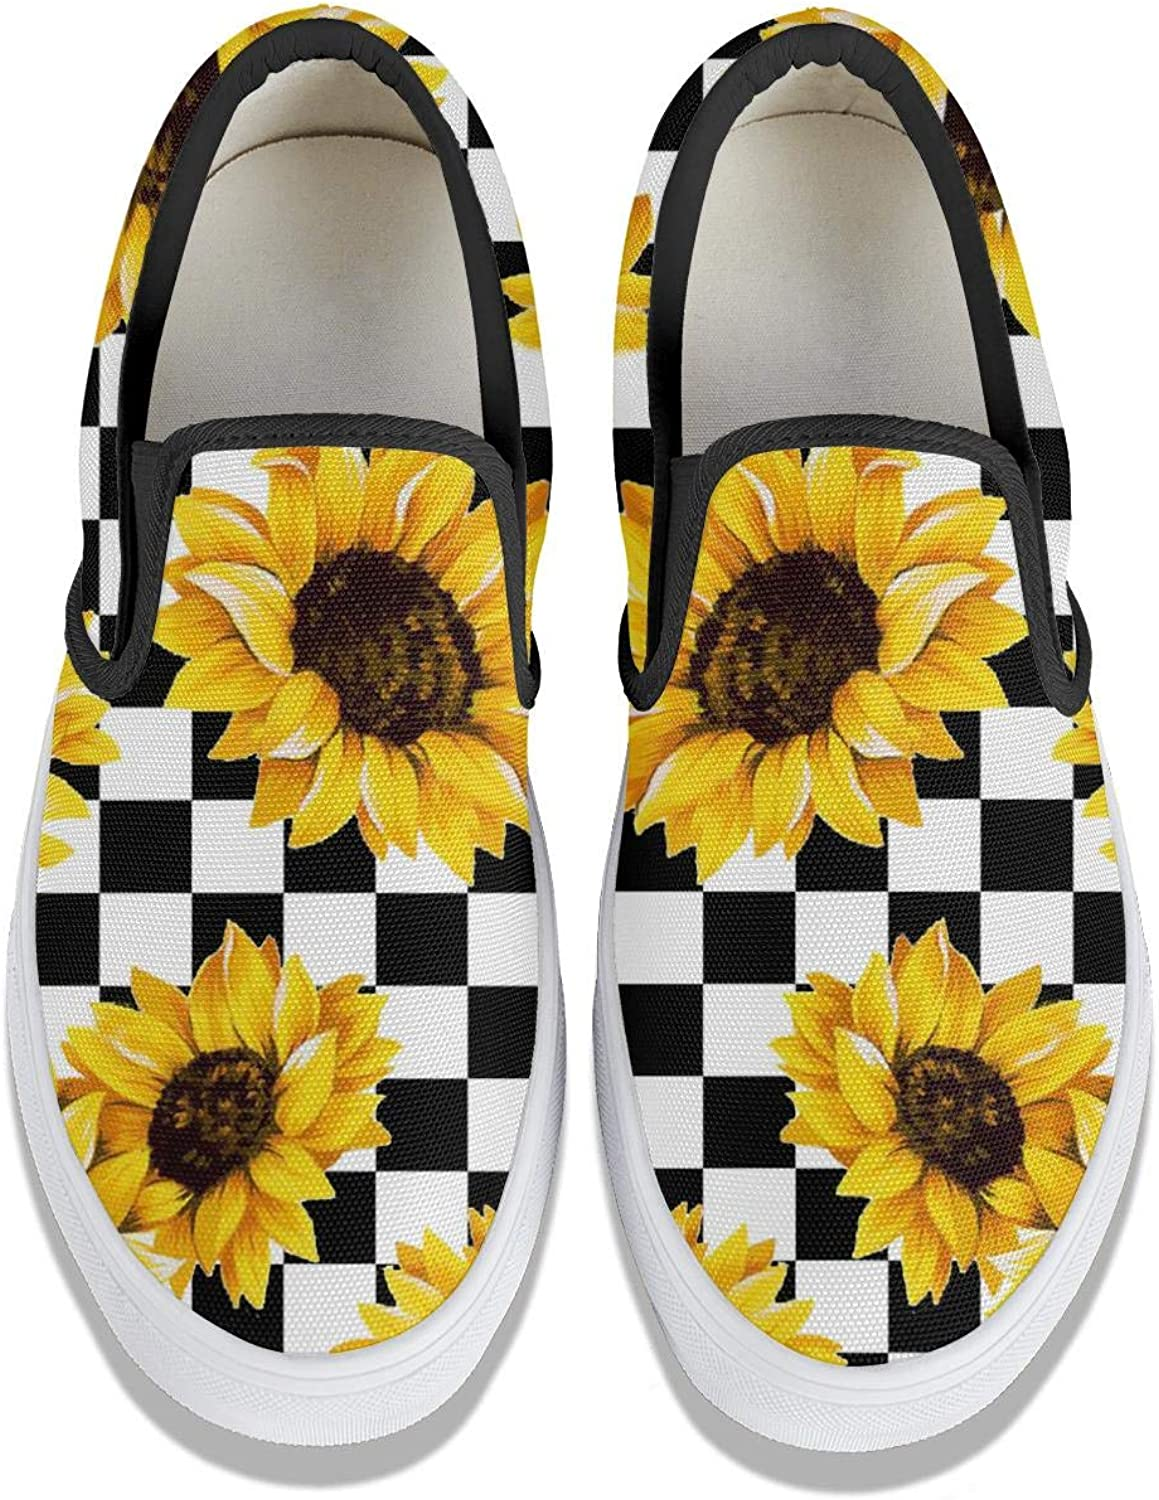 Field of Sunflowers Classic Canvas Shoes Skate Sneakers Women Fashion Print Original Durable